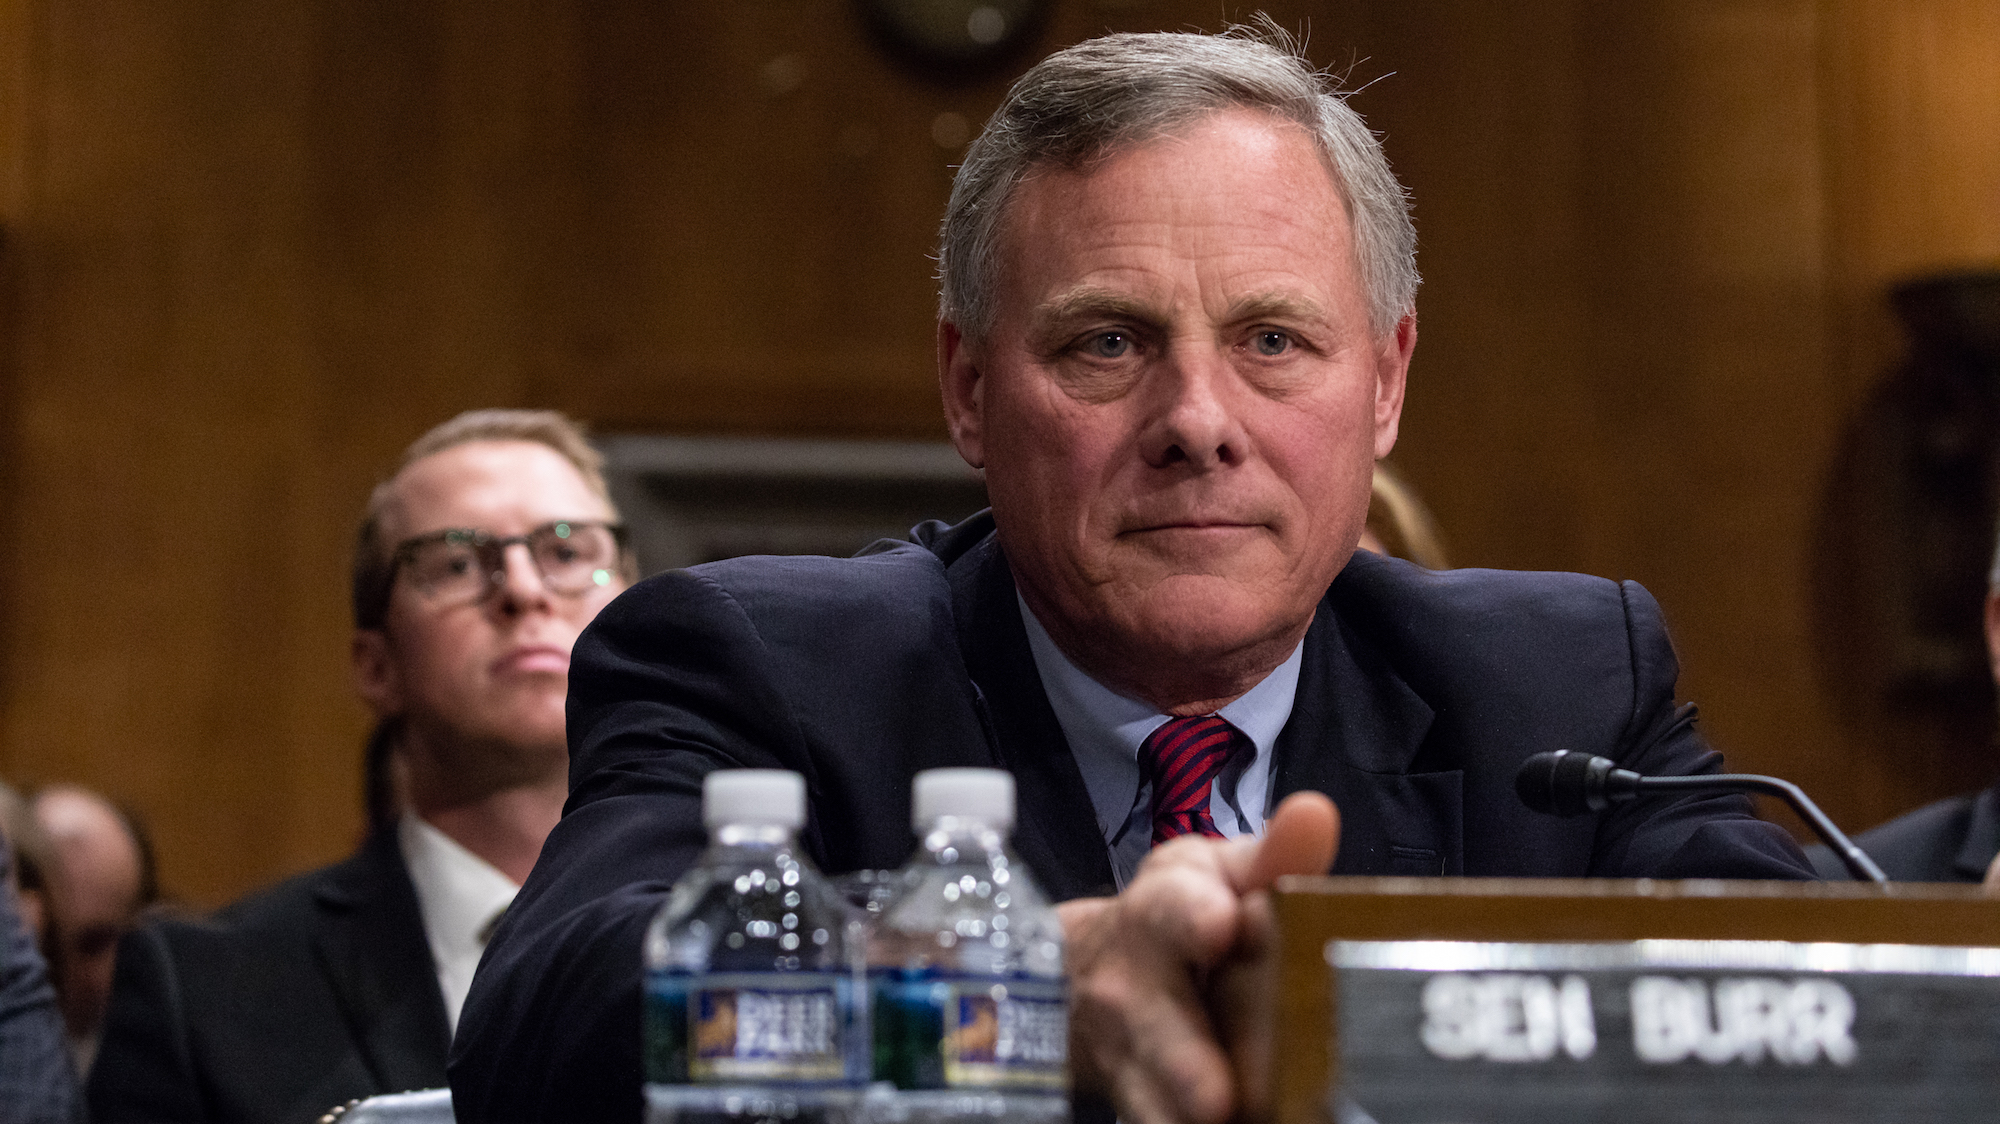 Senate Intel agrees with assessment that Russian Federation meddled to help Trump